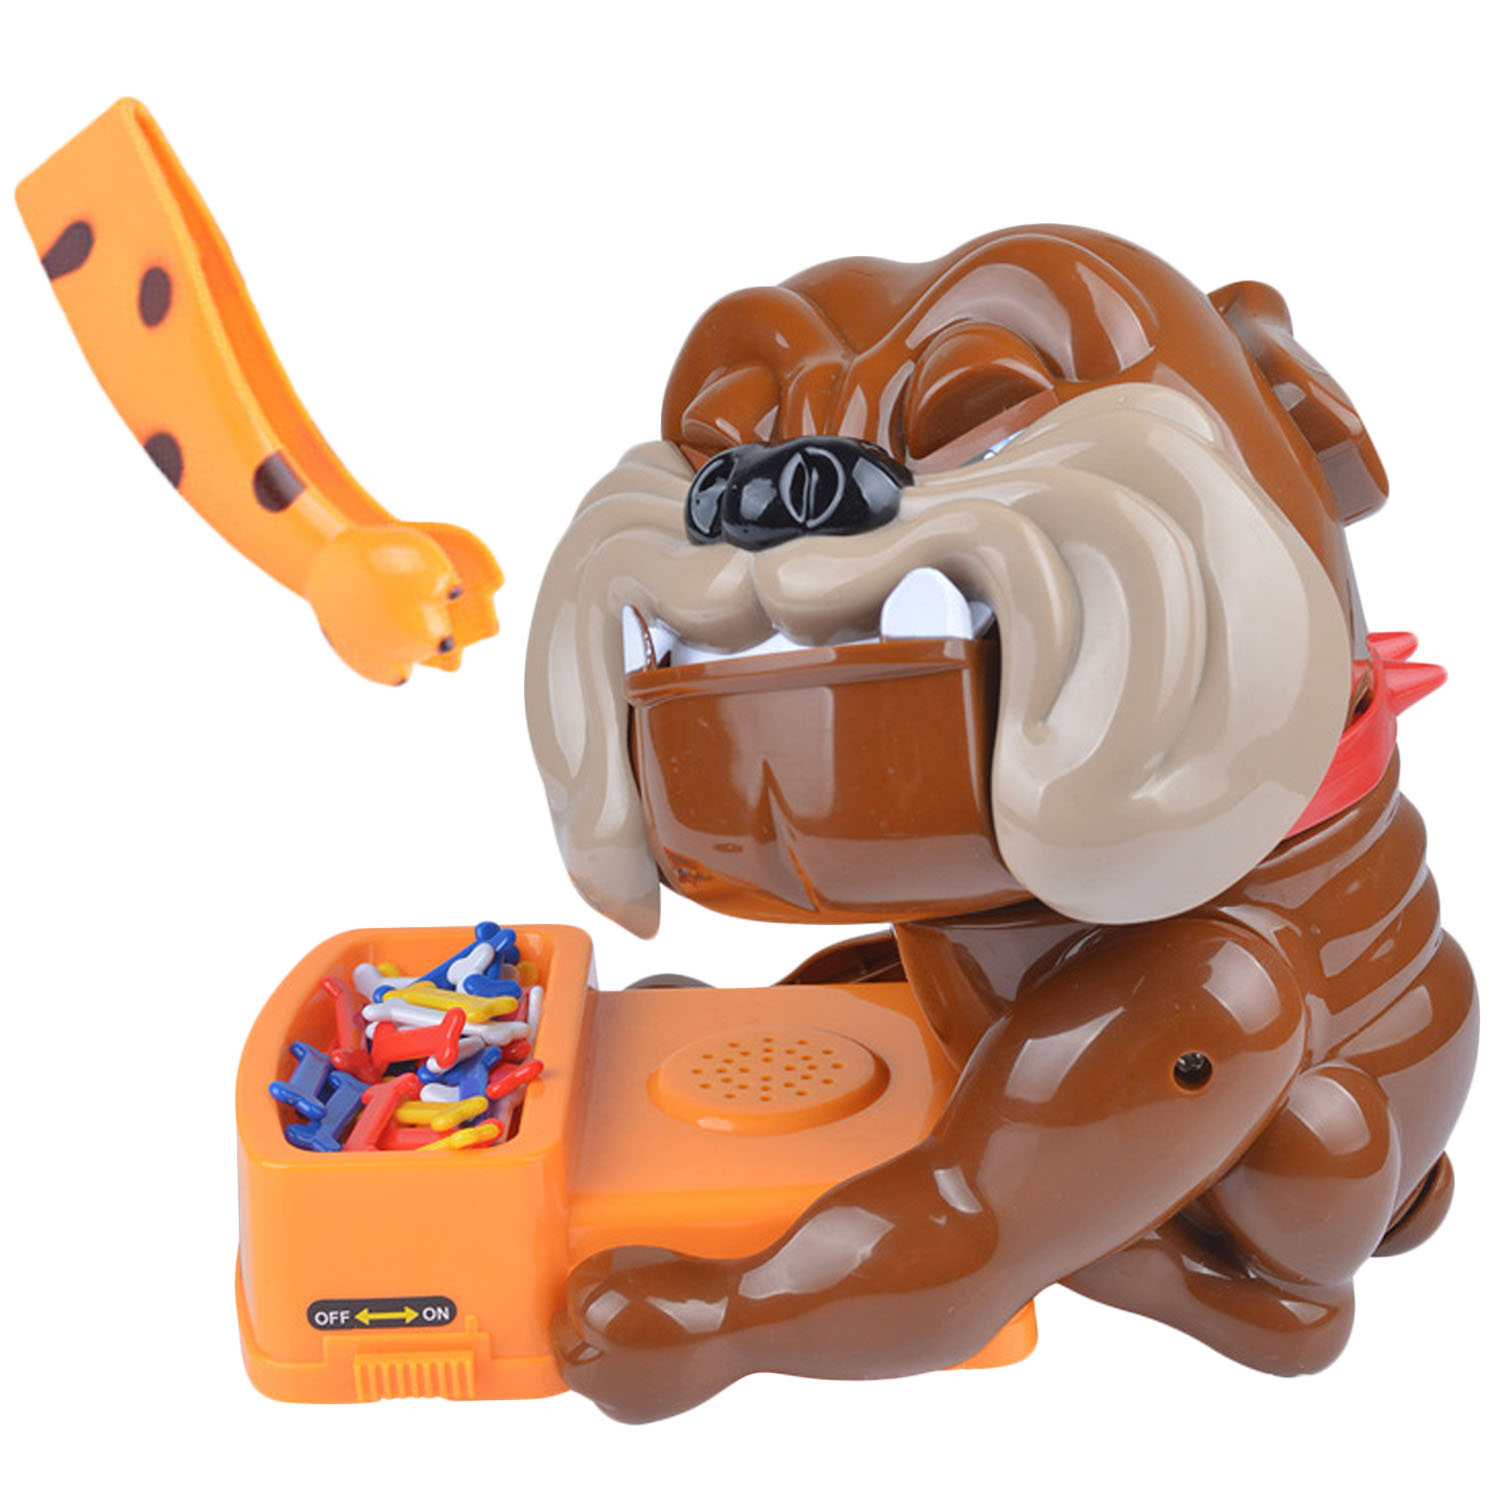 Besegad Funny Tricky Games Bad Dog Bone Action Games Toy Wake Dog Toys For Party Family Parents Kids Friends Play Toys